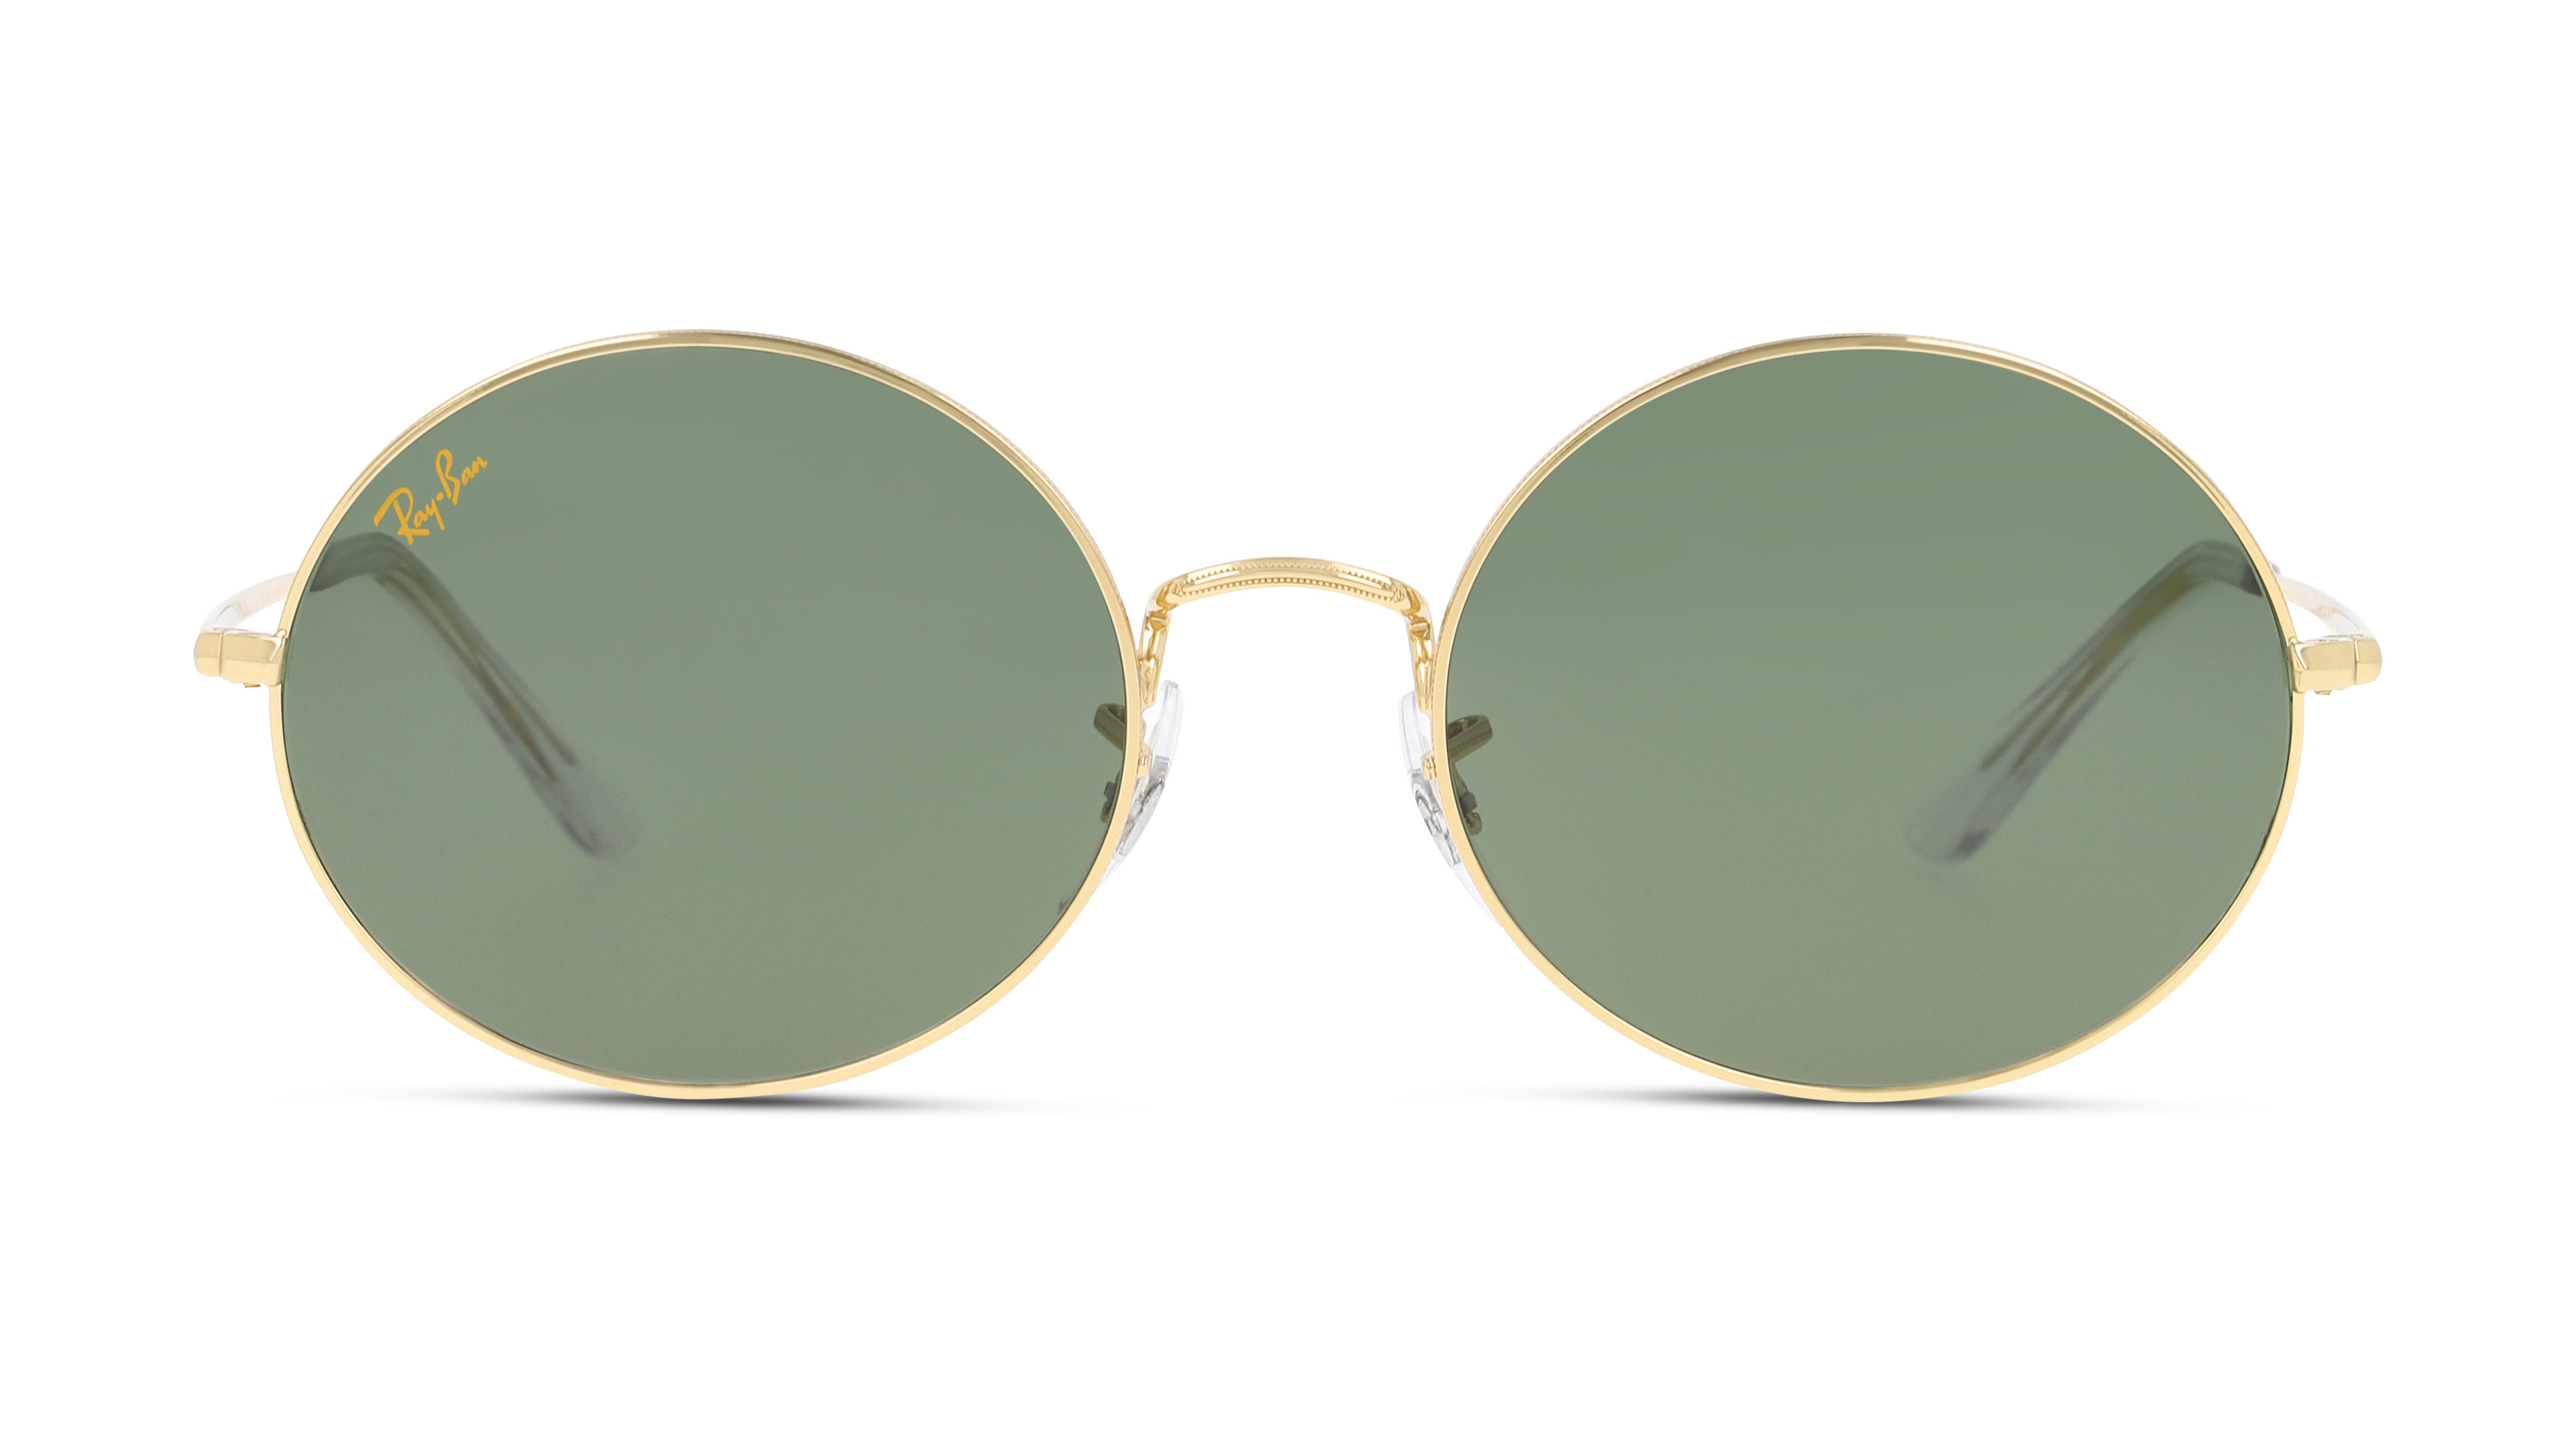 8056597199896-front-ray-ban-sonnenbrille-0rb1970-oval-gold